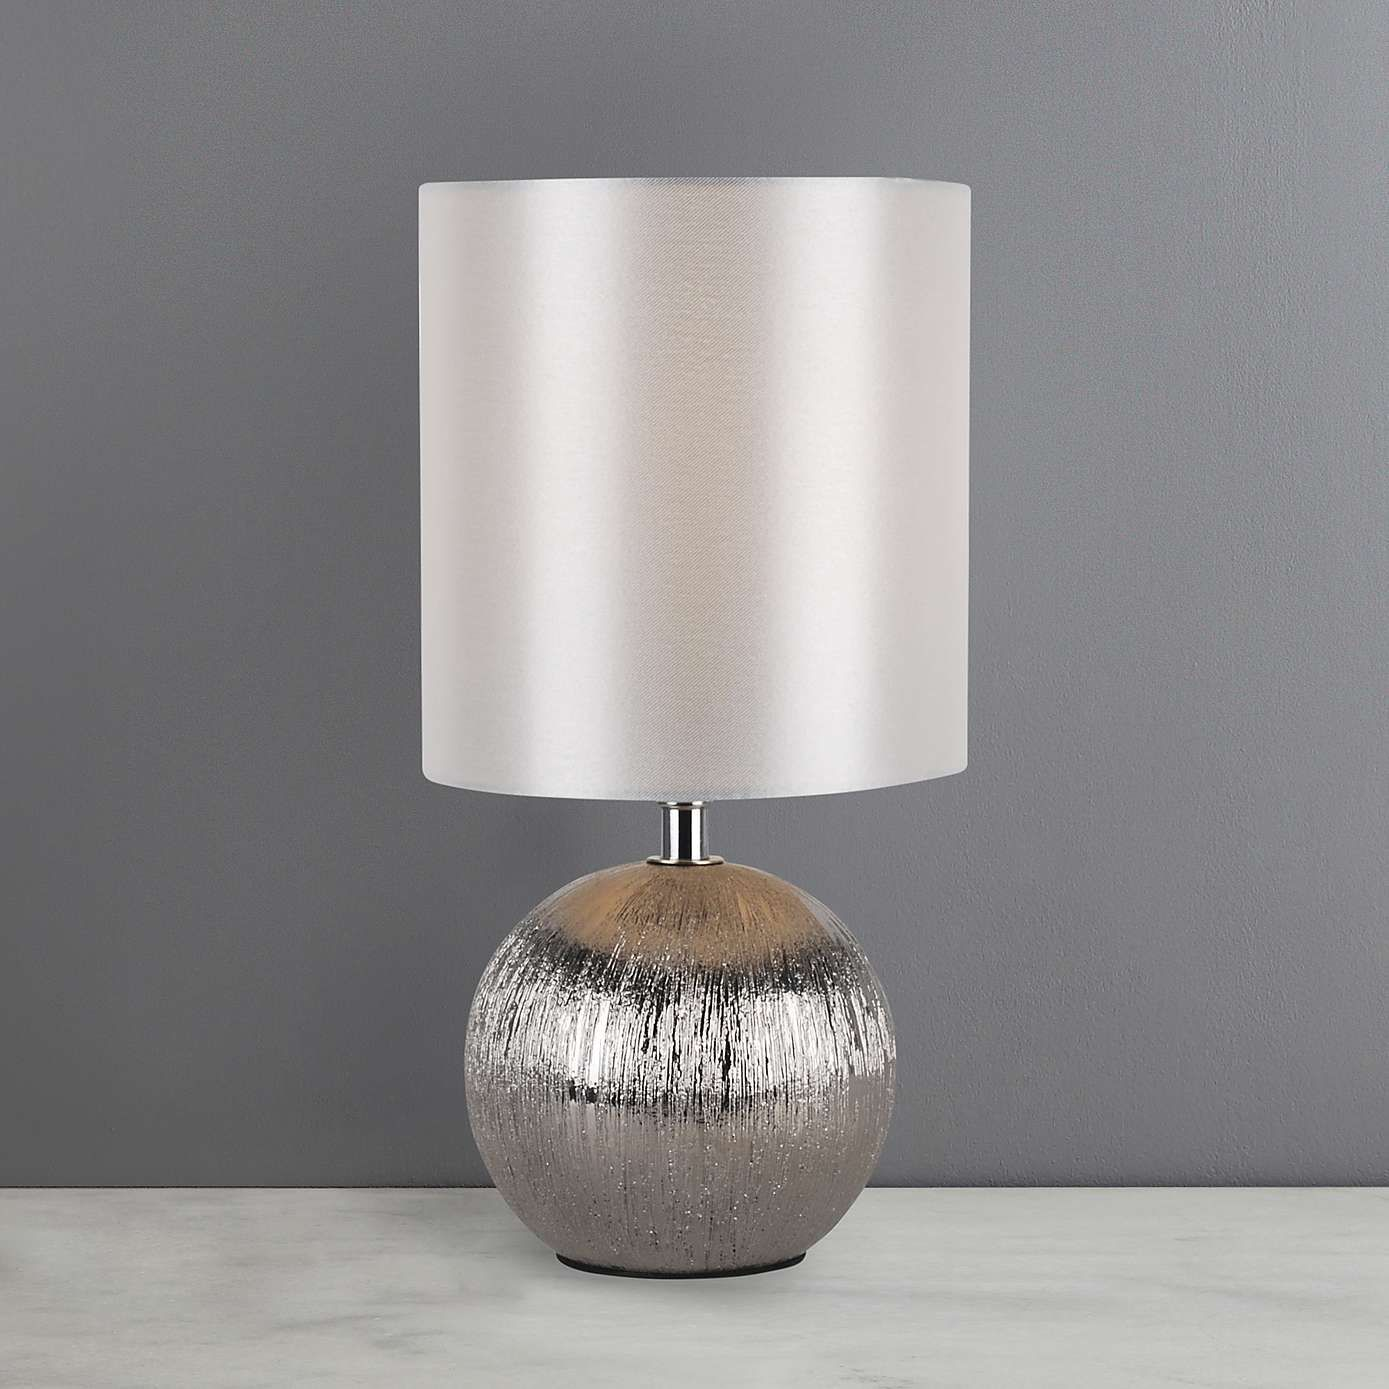 Buy Brompton Table Lamp From The Next Uk Online Shop Lamp Glass Lamp Glass Table Lamp